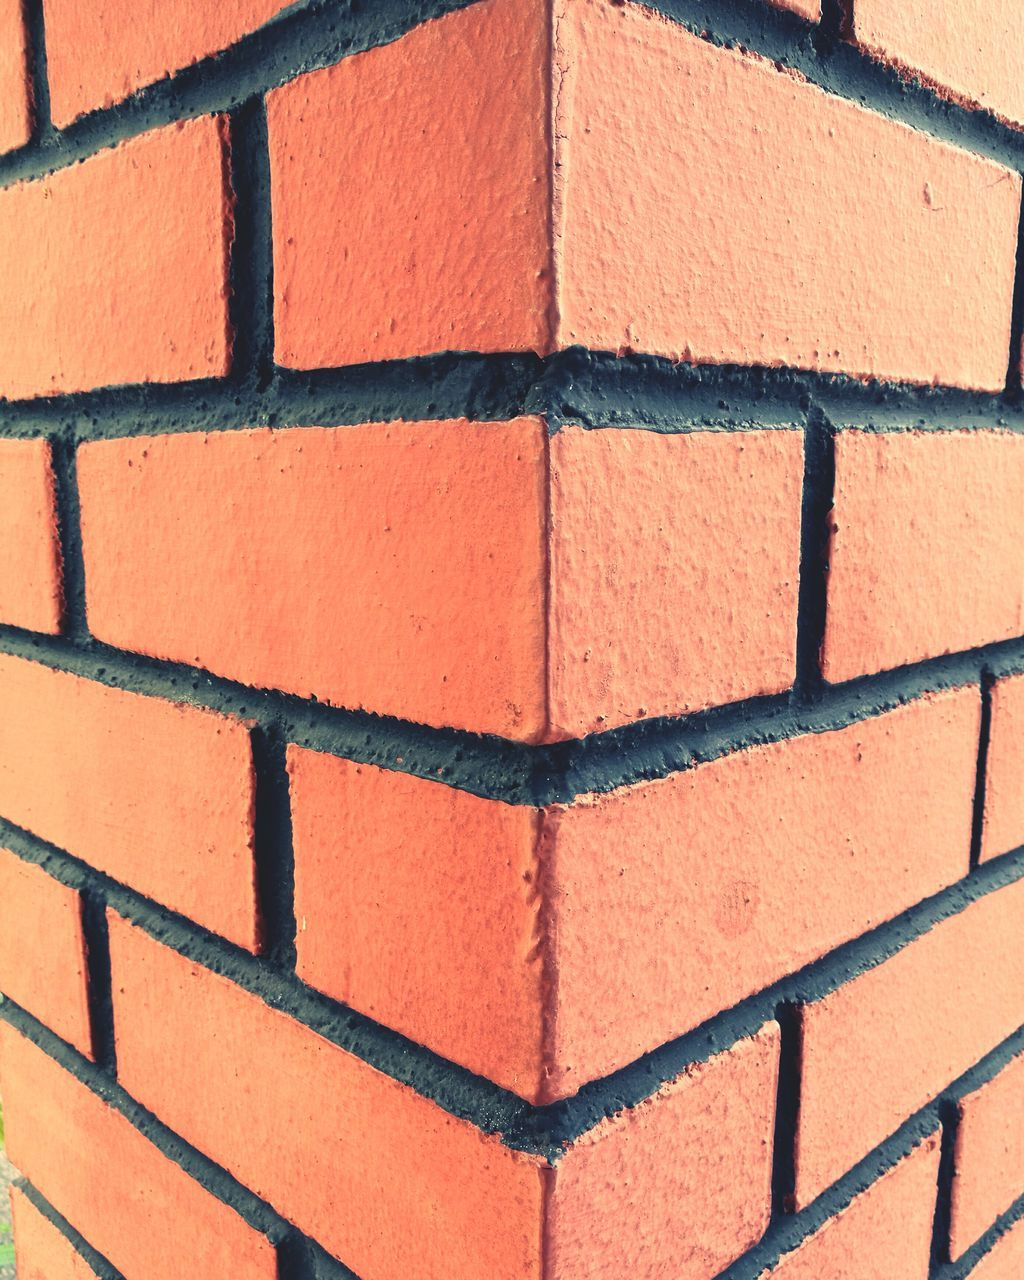 brick wall, full frame, backgrounds, wall - building feature, pattern, red, architecture, day, outdoors, textured, built structure, no people, close-up, building exterior